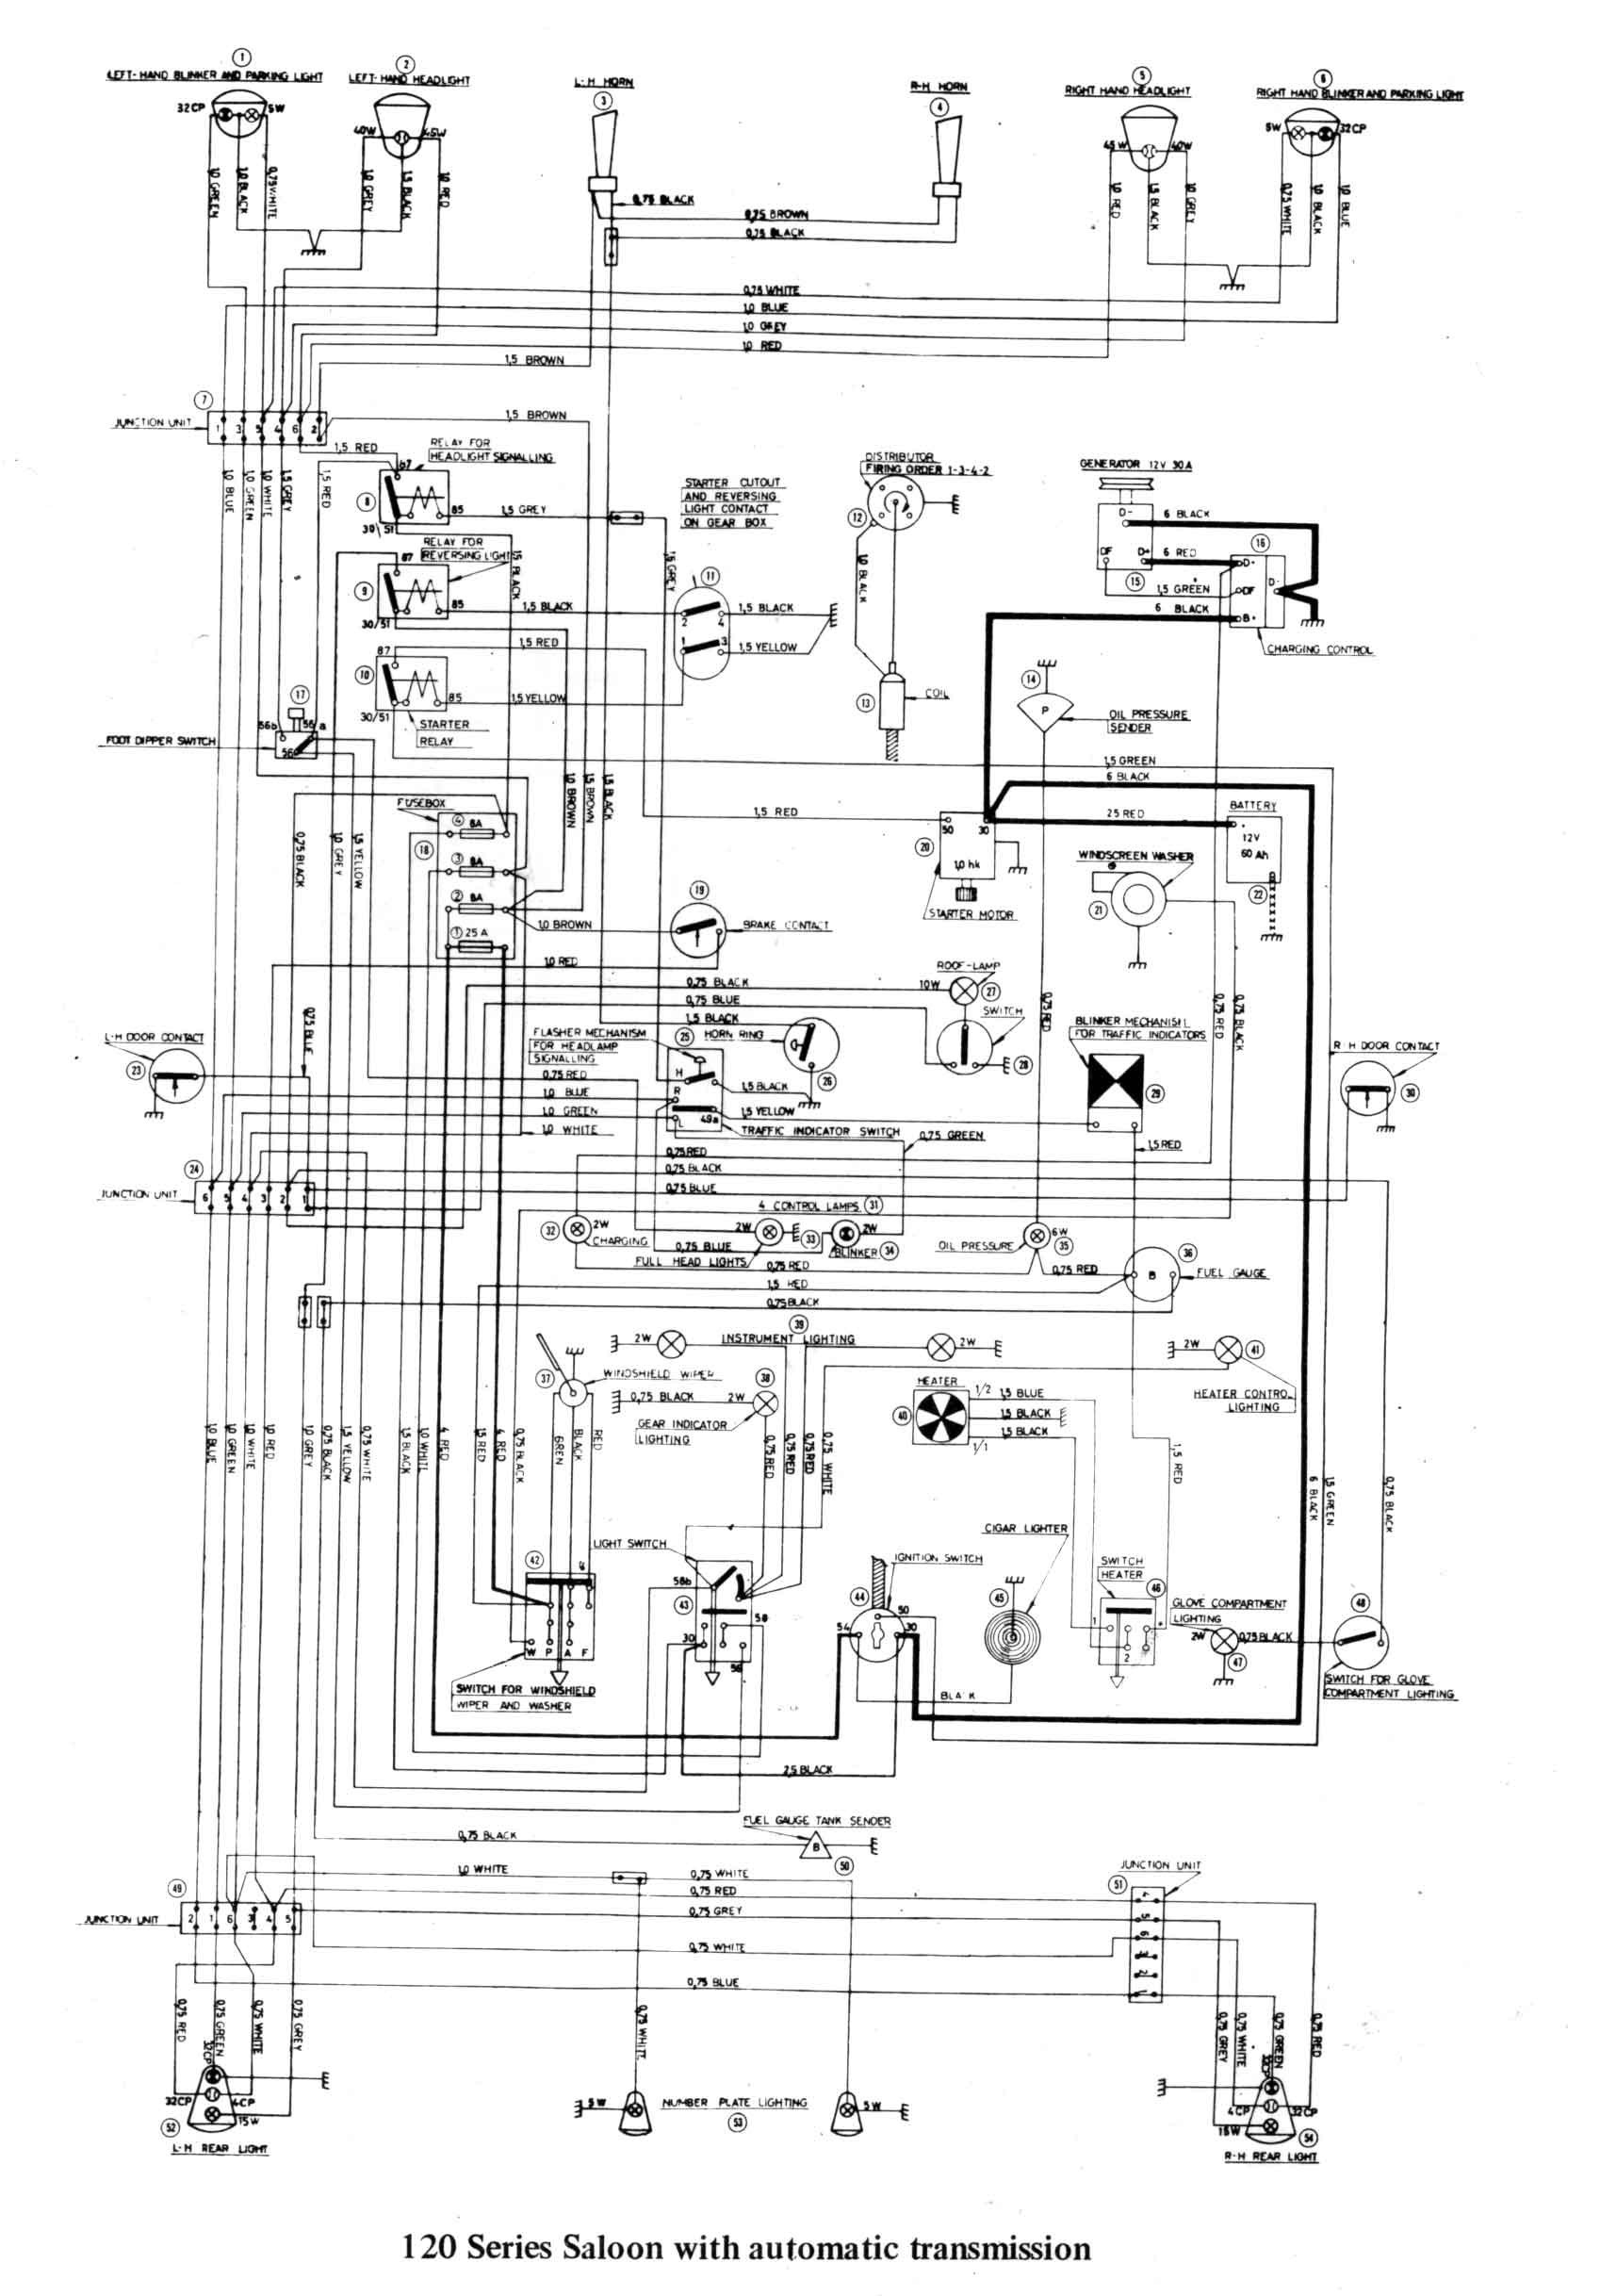 Brilliant Ford Focus Engine Diagram Basic Electronics Wiring Diagram Wiring Digital Resources Tziciprontobusorg